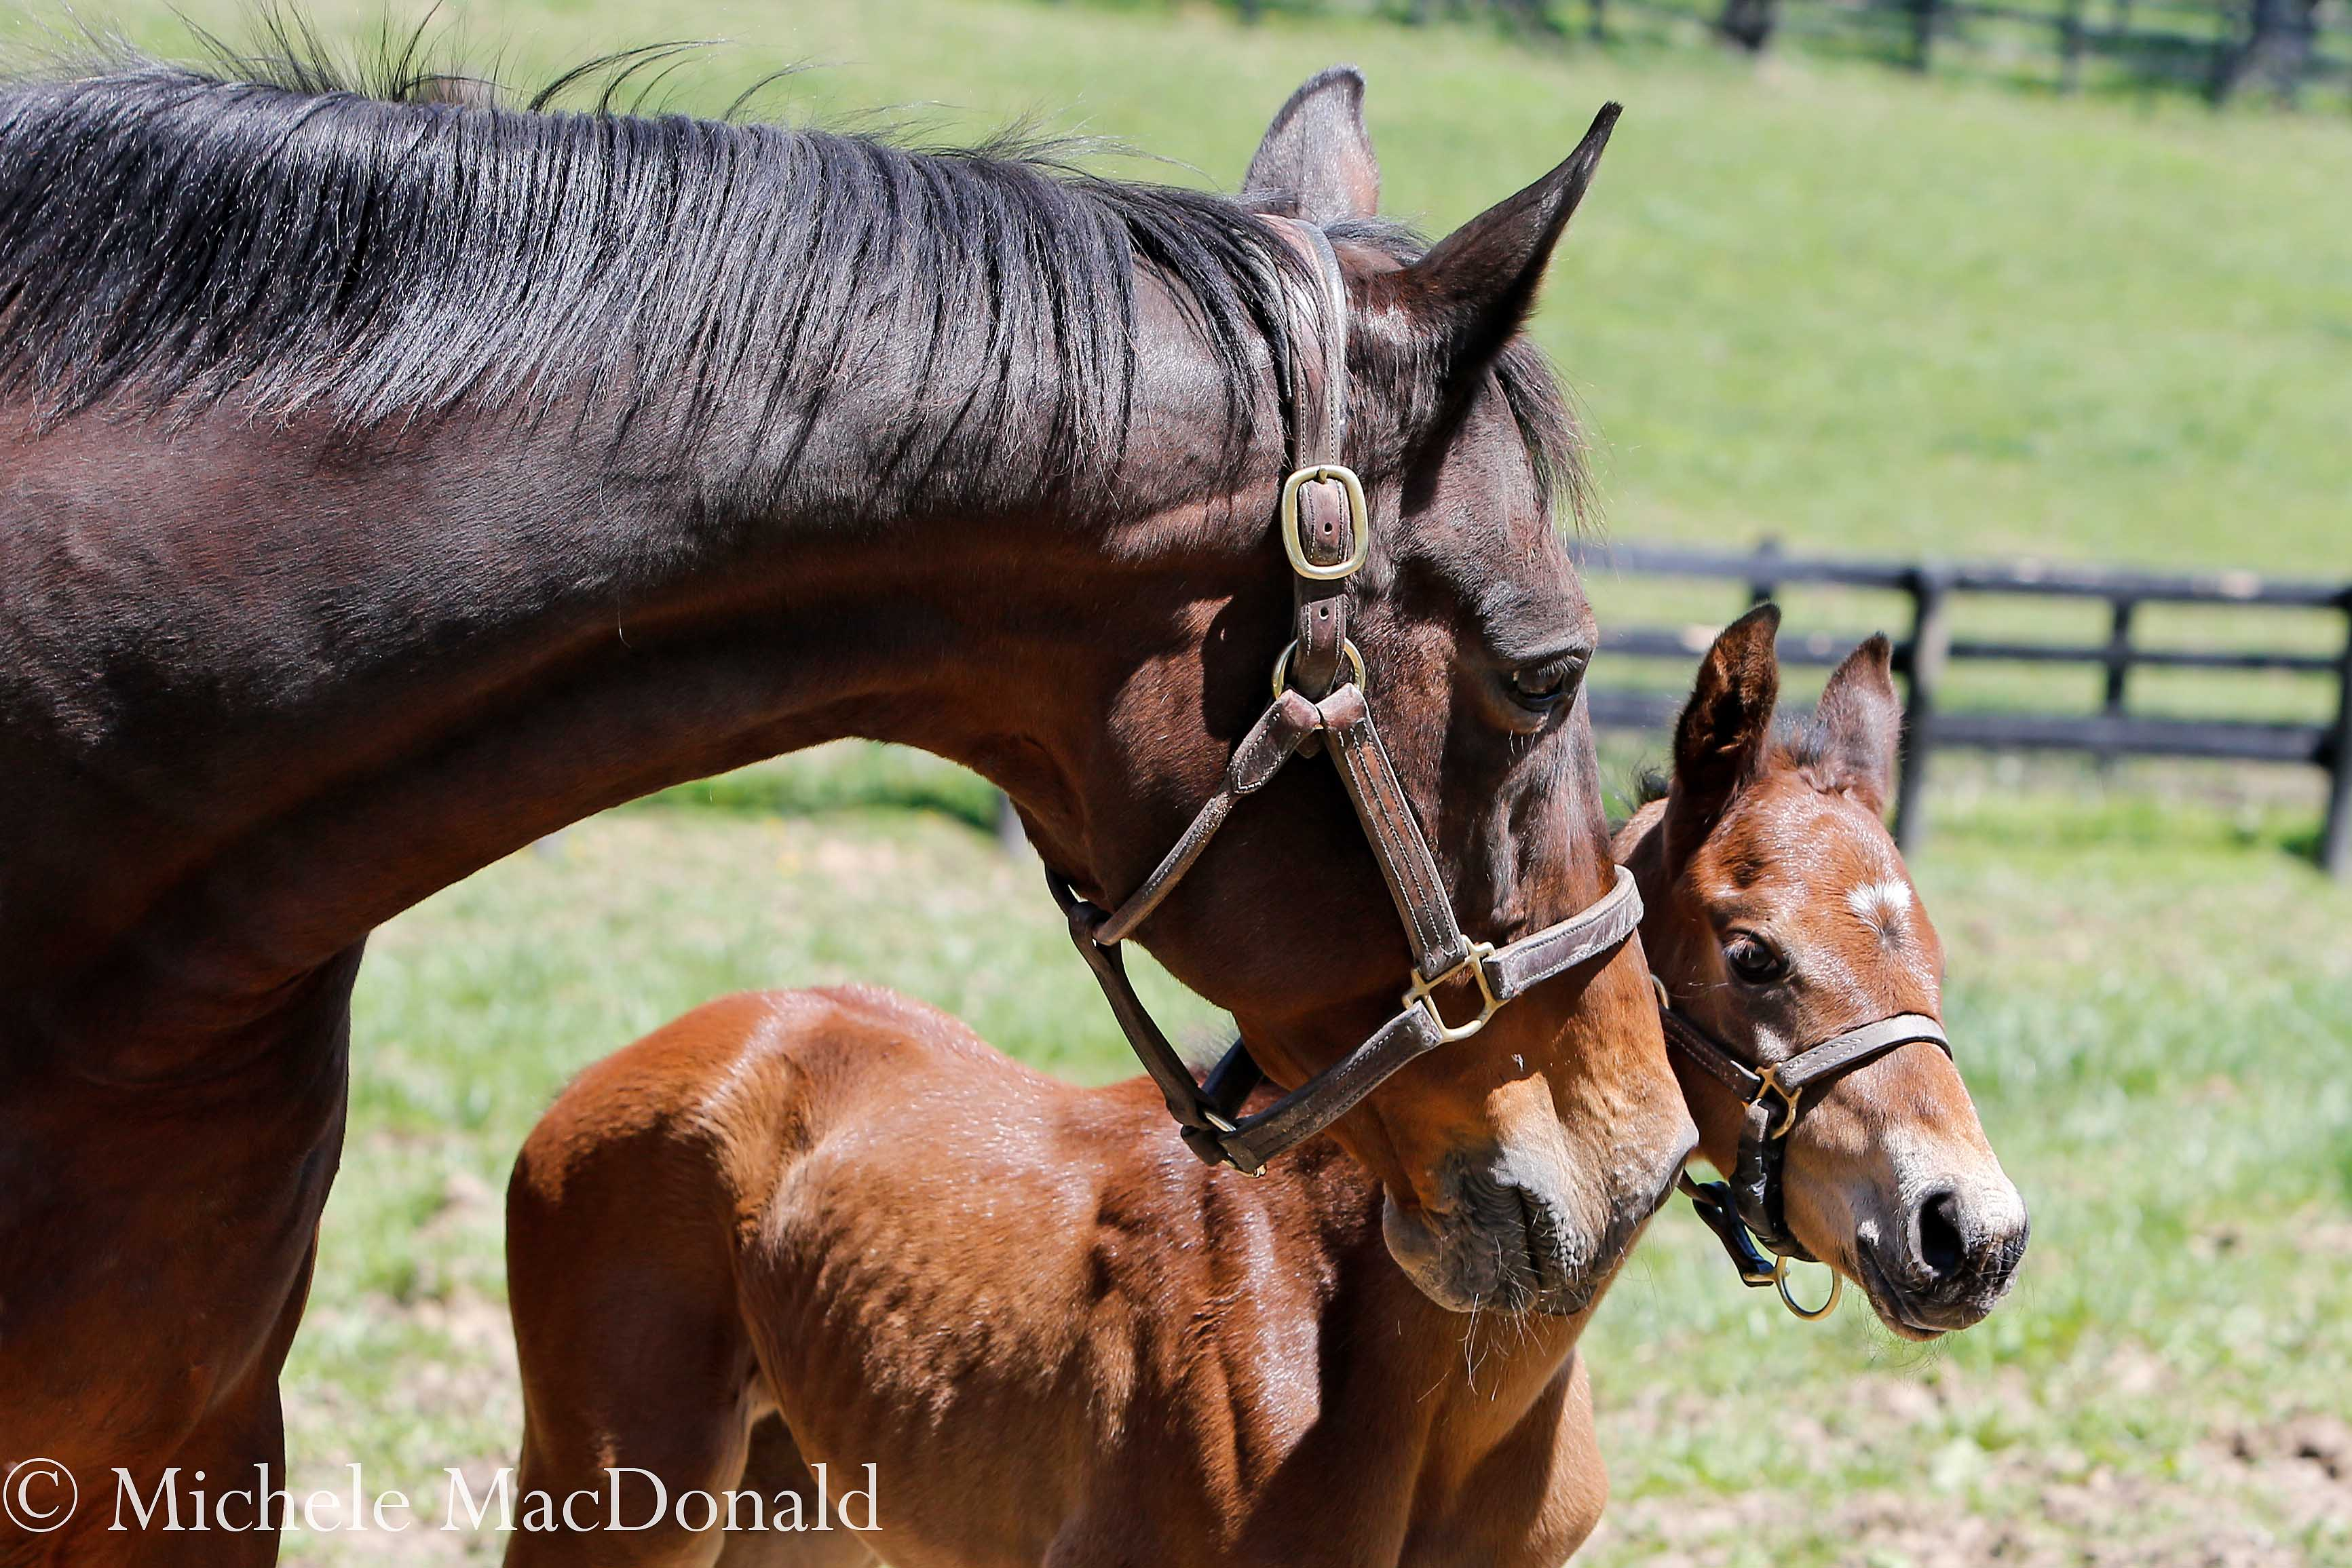 A mother's love: Leslie's Lady is taking the duty of raising her new baby with the same earnest commitment she displayed at Clarkland with Beholder and Mendelssohn. Photo: Michele MacDonald